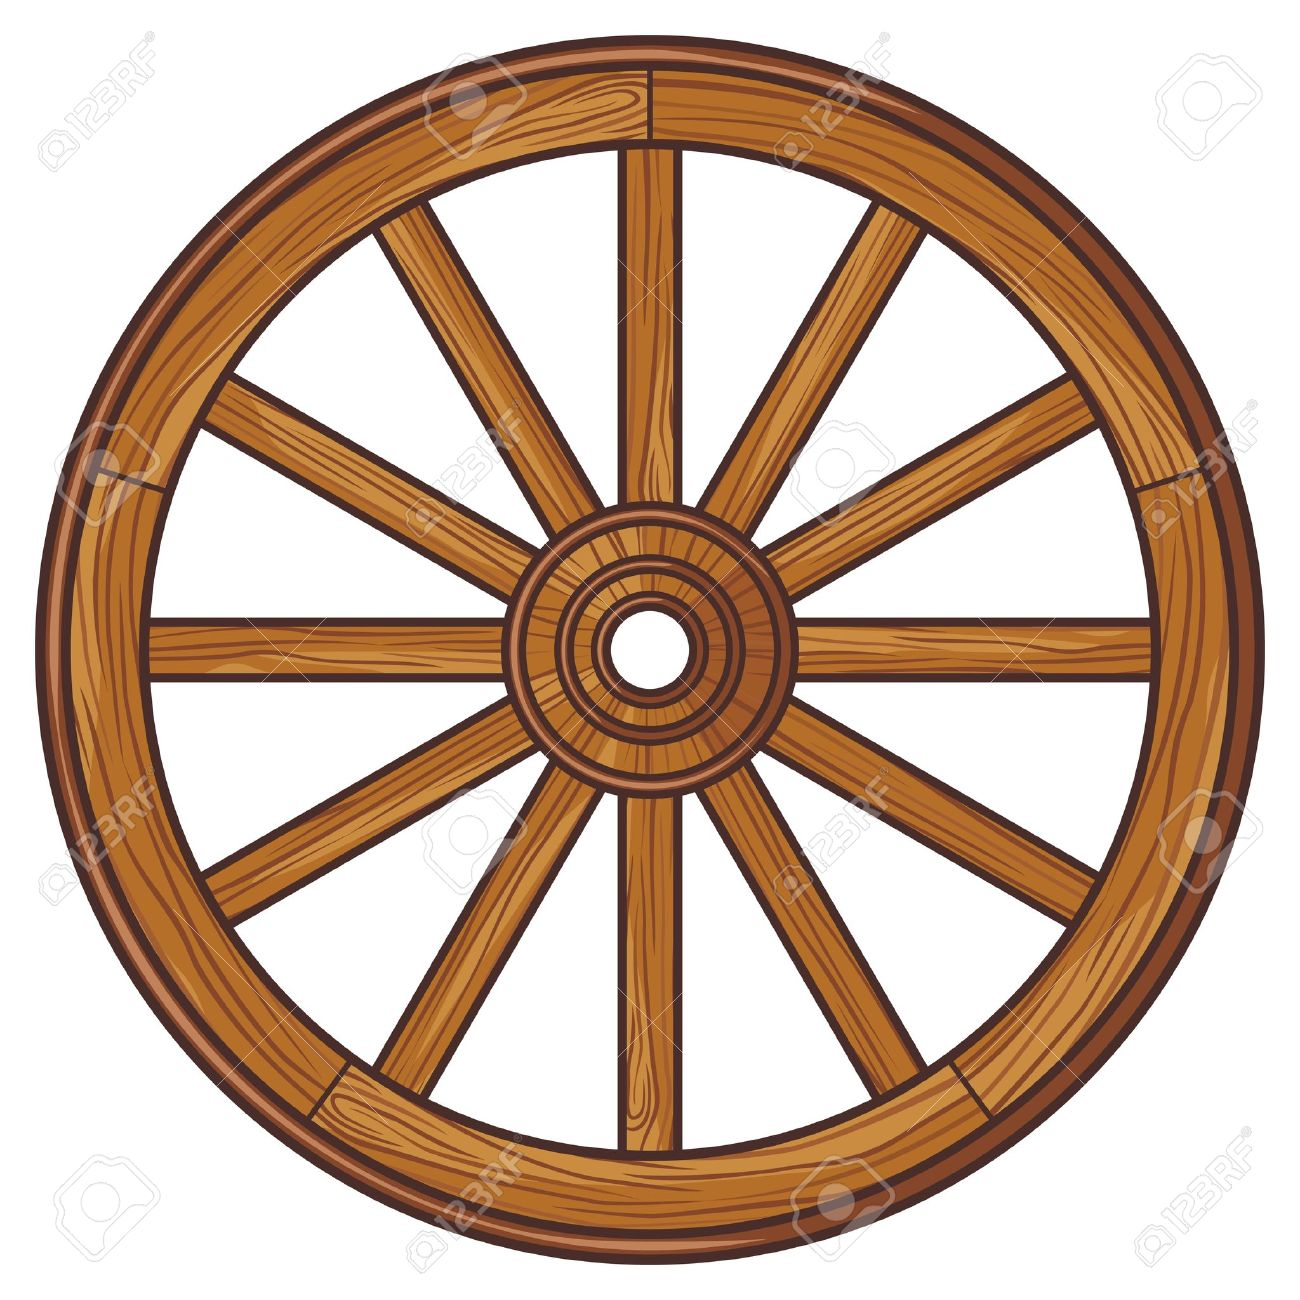 Old Wooden Wheel Royalty Free Cliparts, Vectors, And Stock.